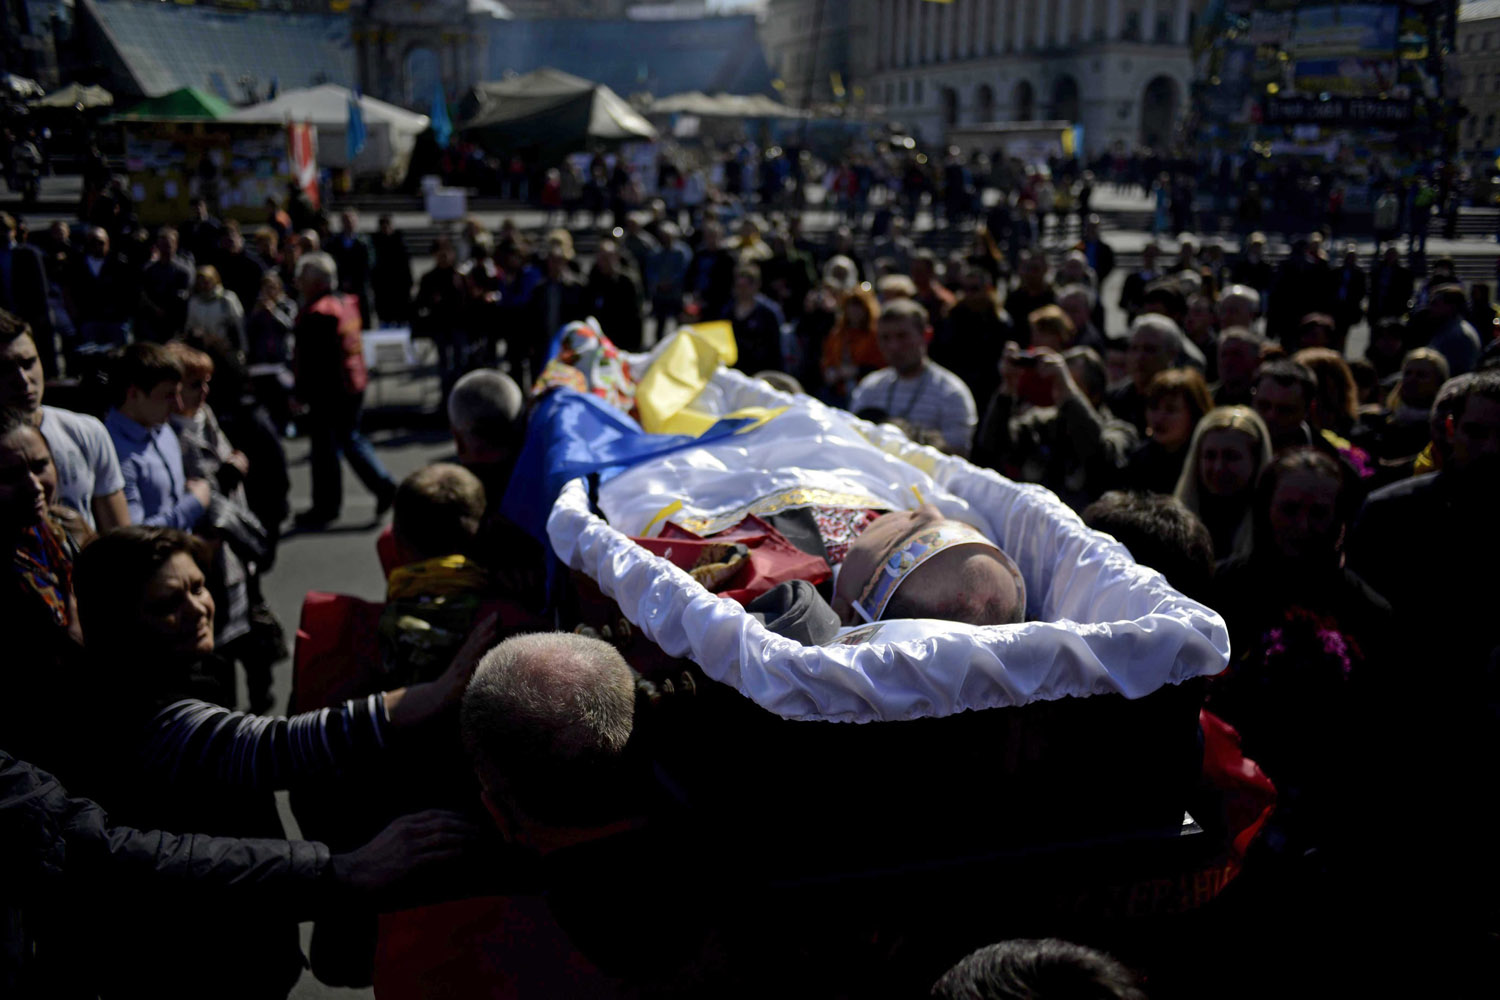 Mar. 25, 2014.  People attend the funeral ceremony of Petro Mironovich, a maidan activist, at Independence Square in Kiev, Ukraine. Mironovich, an Afghan war veteran, was an anti-government protester who died in a hospital after gas poisoning.